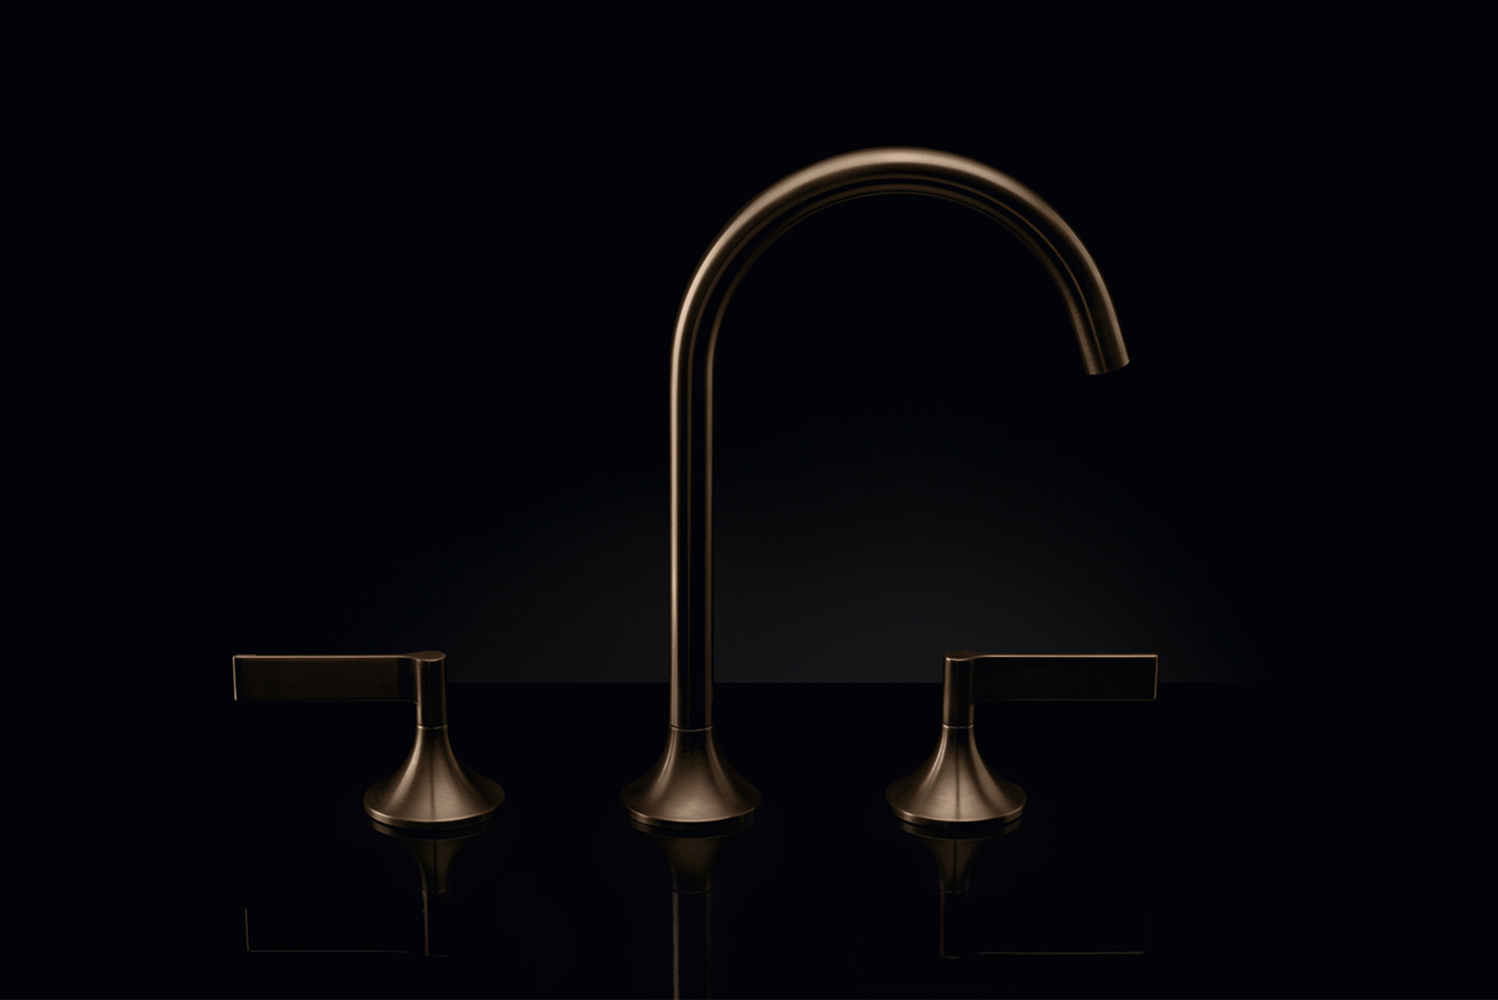 Dornbracht presented its new collection of colors for Vaia.